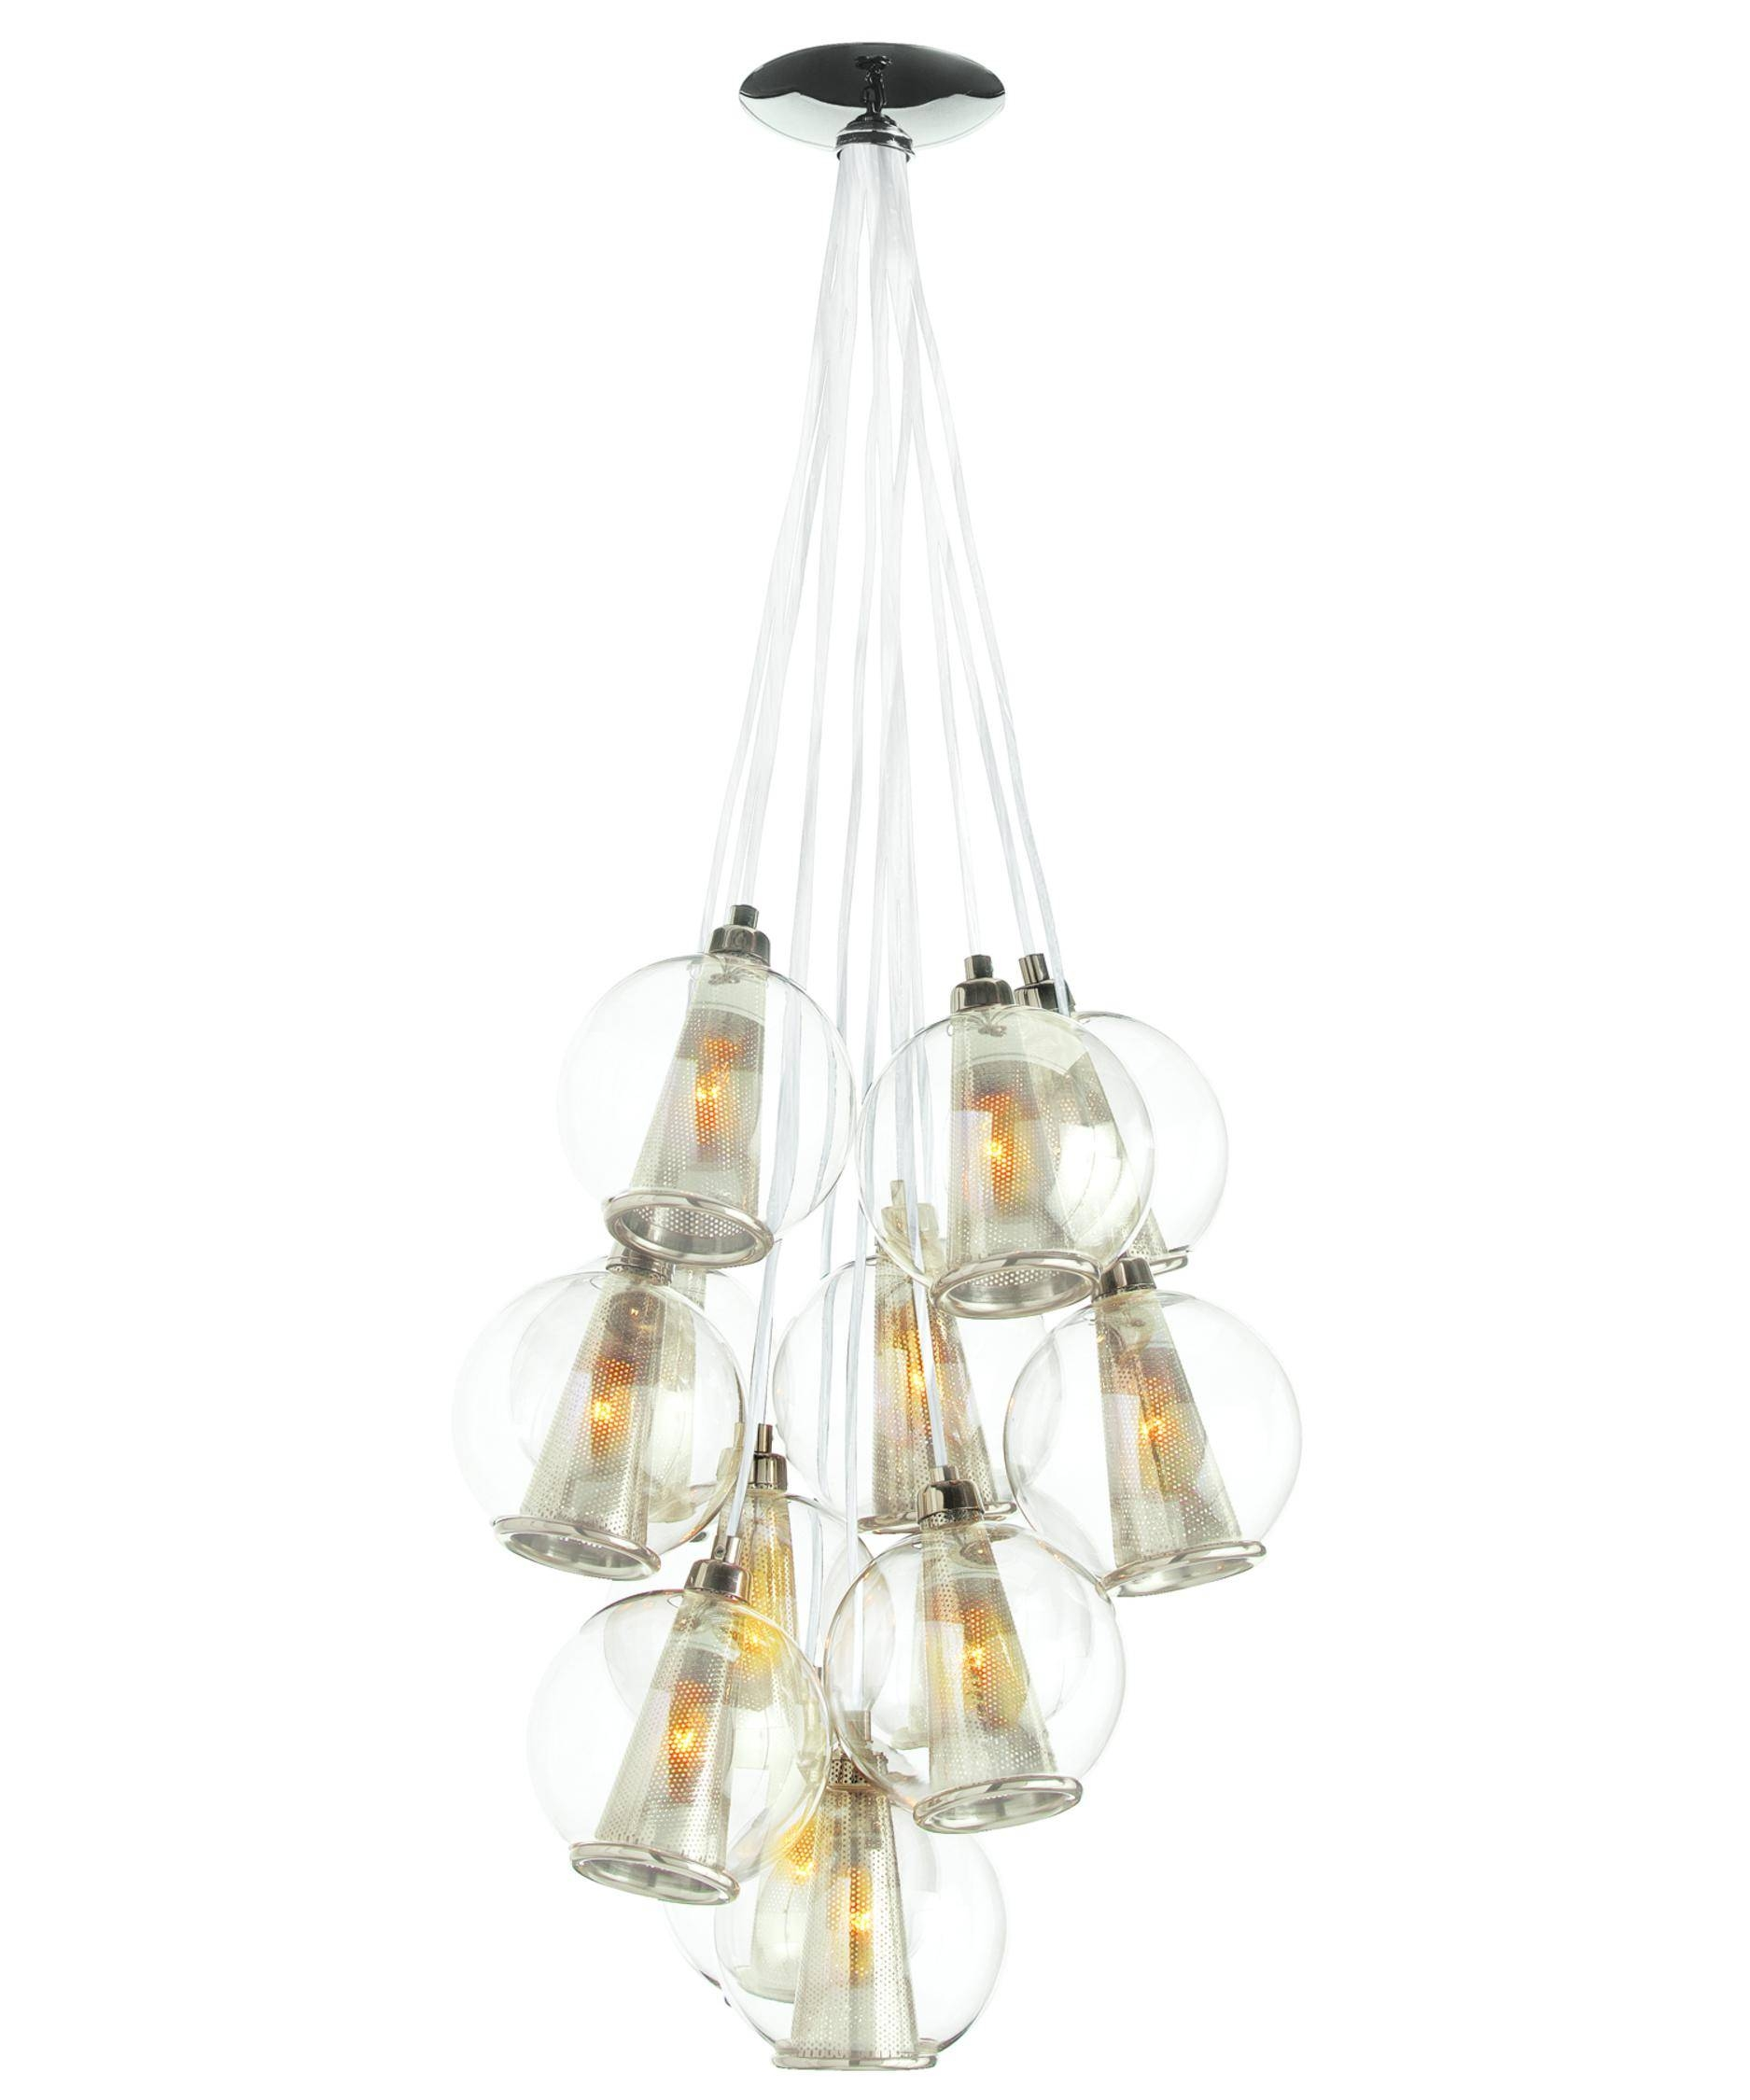 Arteriors Home Dk89921 Caviar 18 Inch Wide 1 Light Chandelier in Caviar Lights (Image 8 of 15)